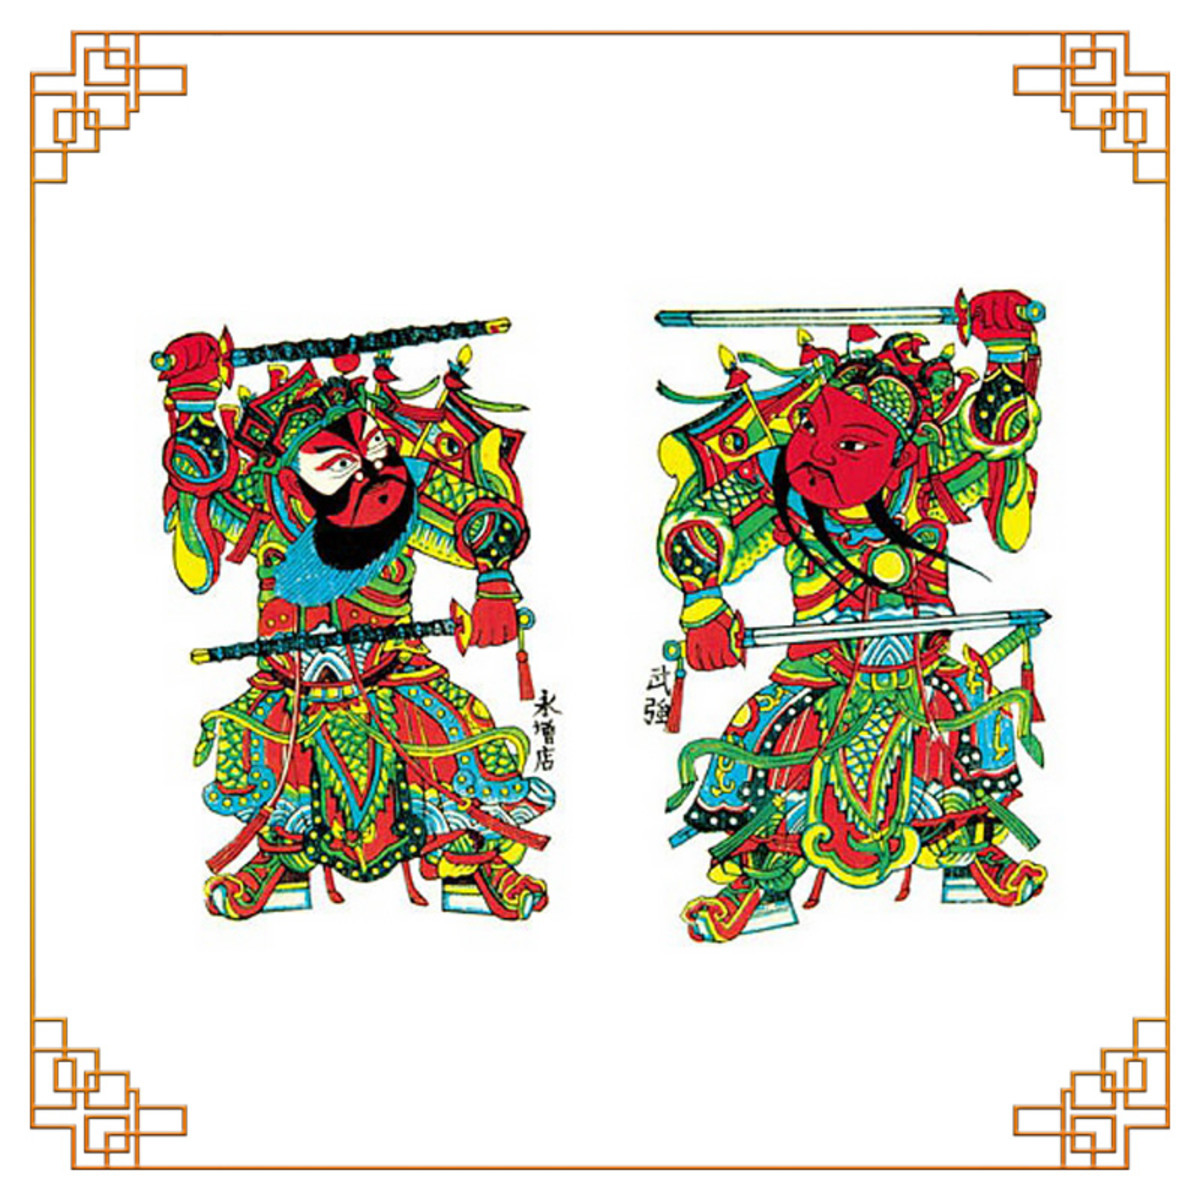 The Chinese Gods of the Door.  You would inevitably encounter them at the entrances of older Chinese mansions.